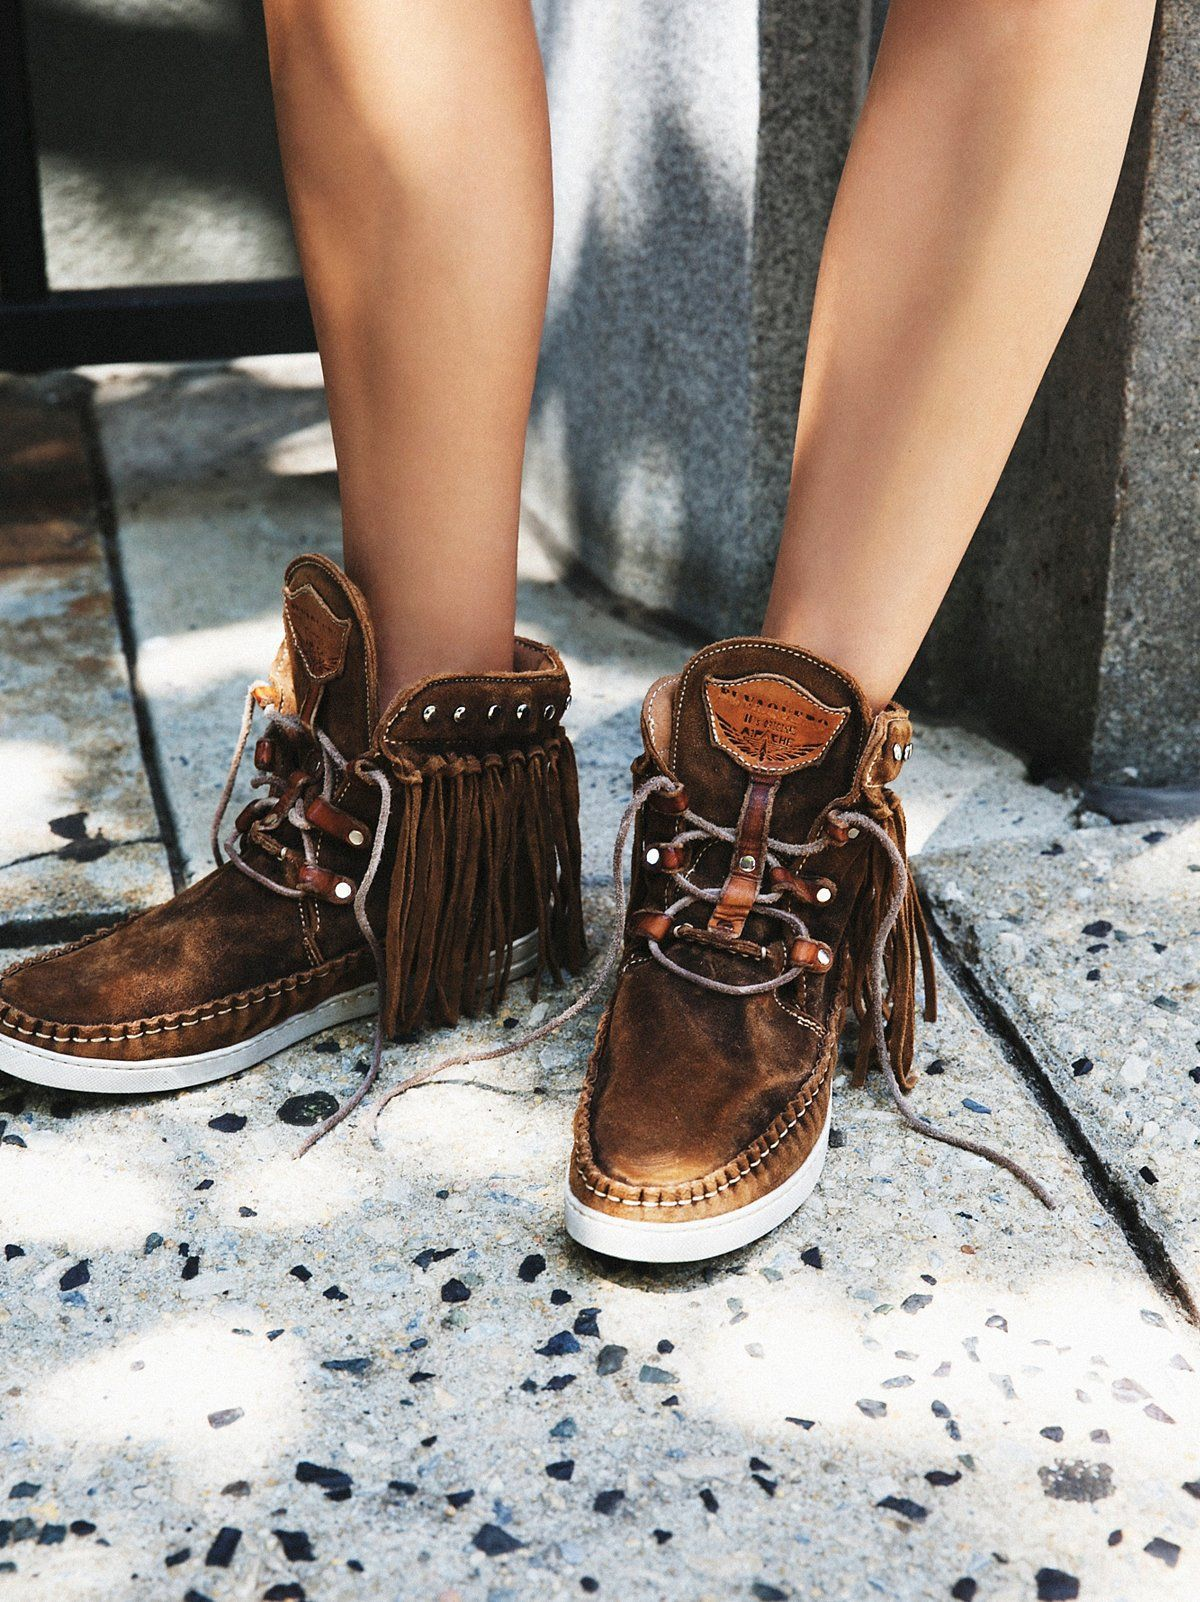 Maze Runner Ankle Boot Suede Ankle Boots Boots Ankle Boots